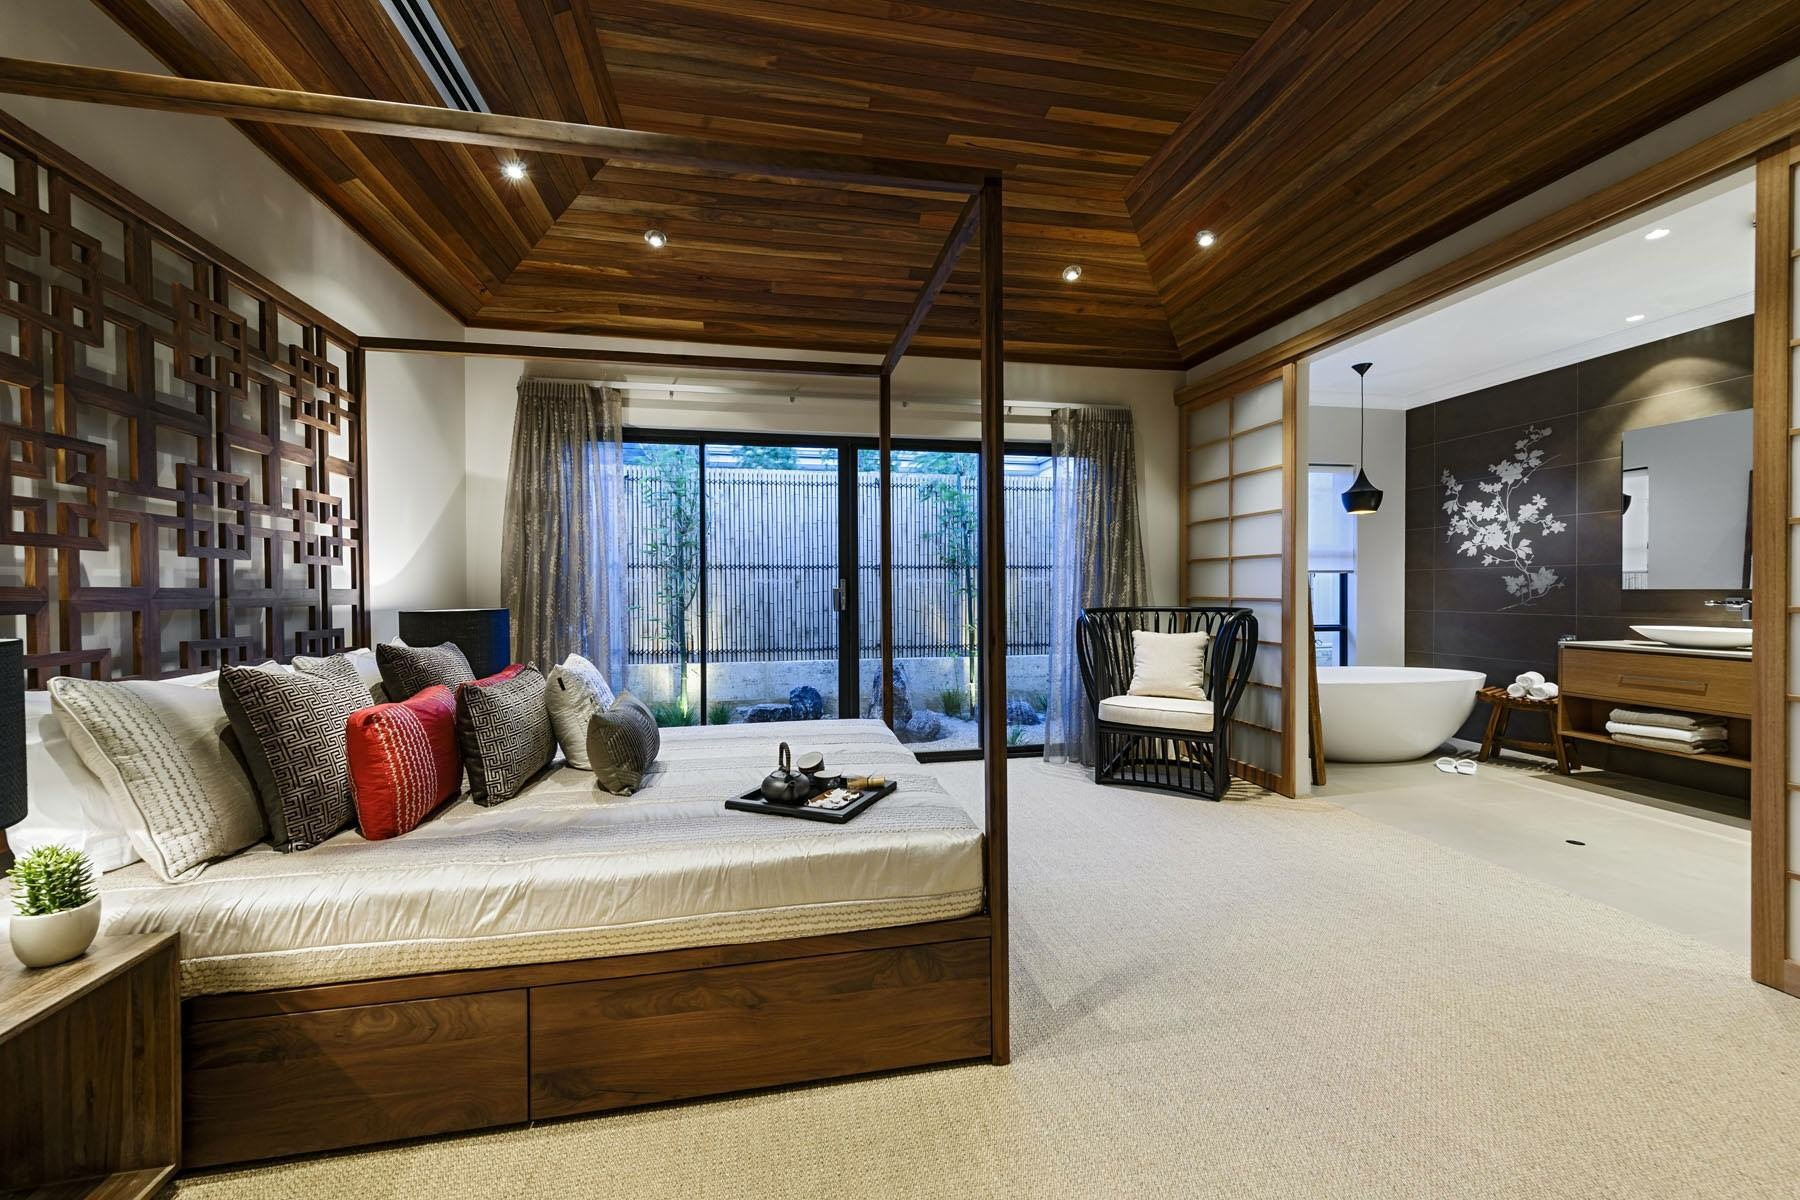 master bedroom Inspiring Master Bedrooms From the Best Interior Designers d9d7a6c0f9693aed9c19e85ff7cd8557